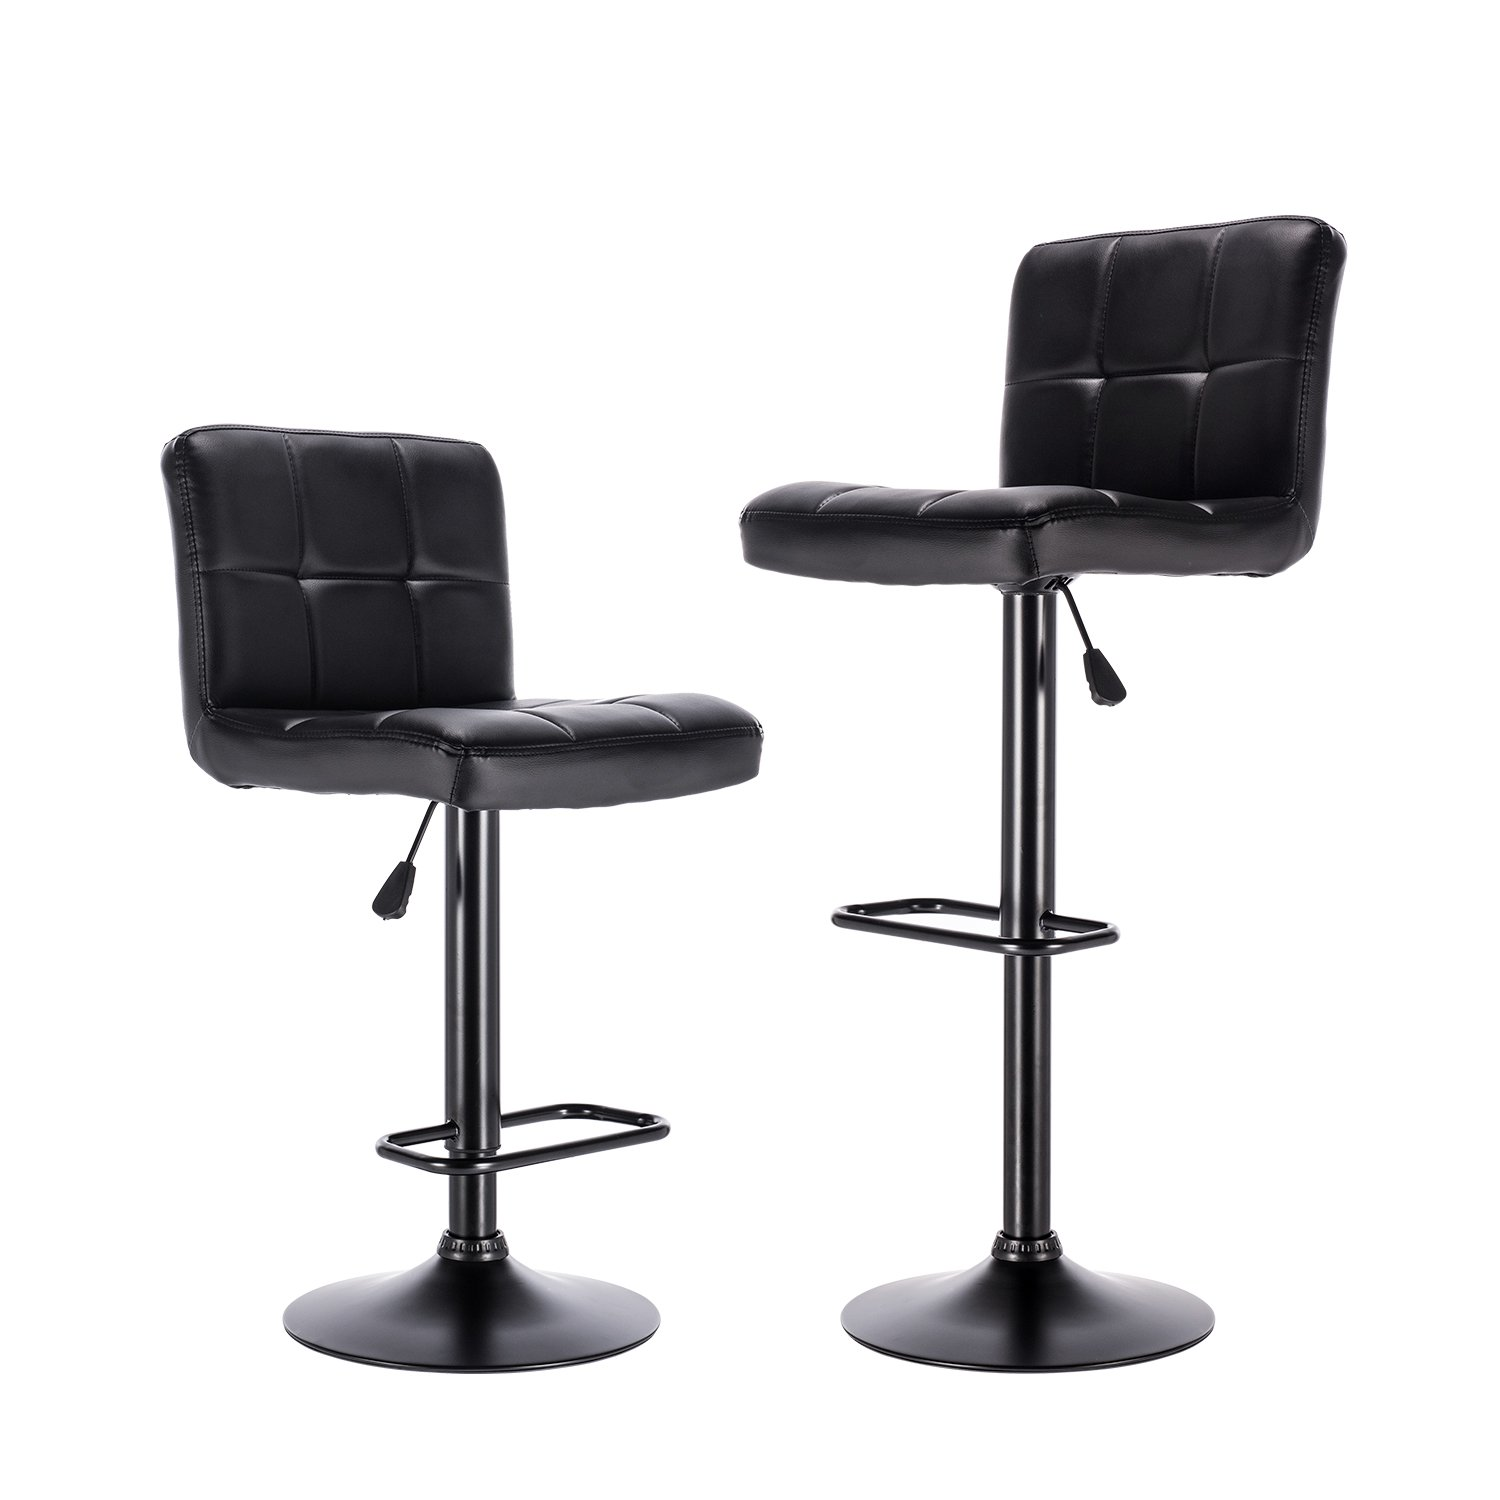 LCH Bar Stools,Airlift Square Adjustable Bar Stools with Back, Counter Height Swivel Bar Stool Chairs,Set of 2 (Black)